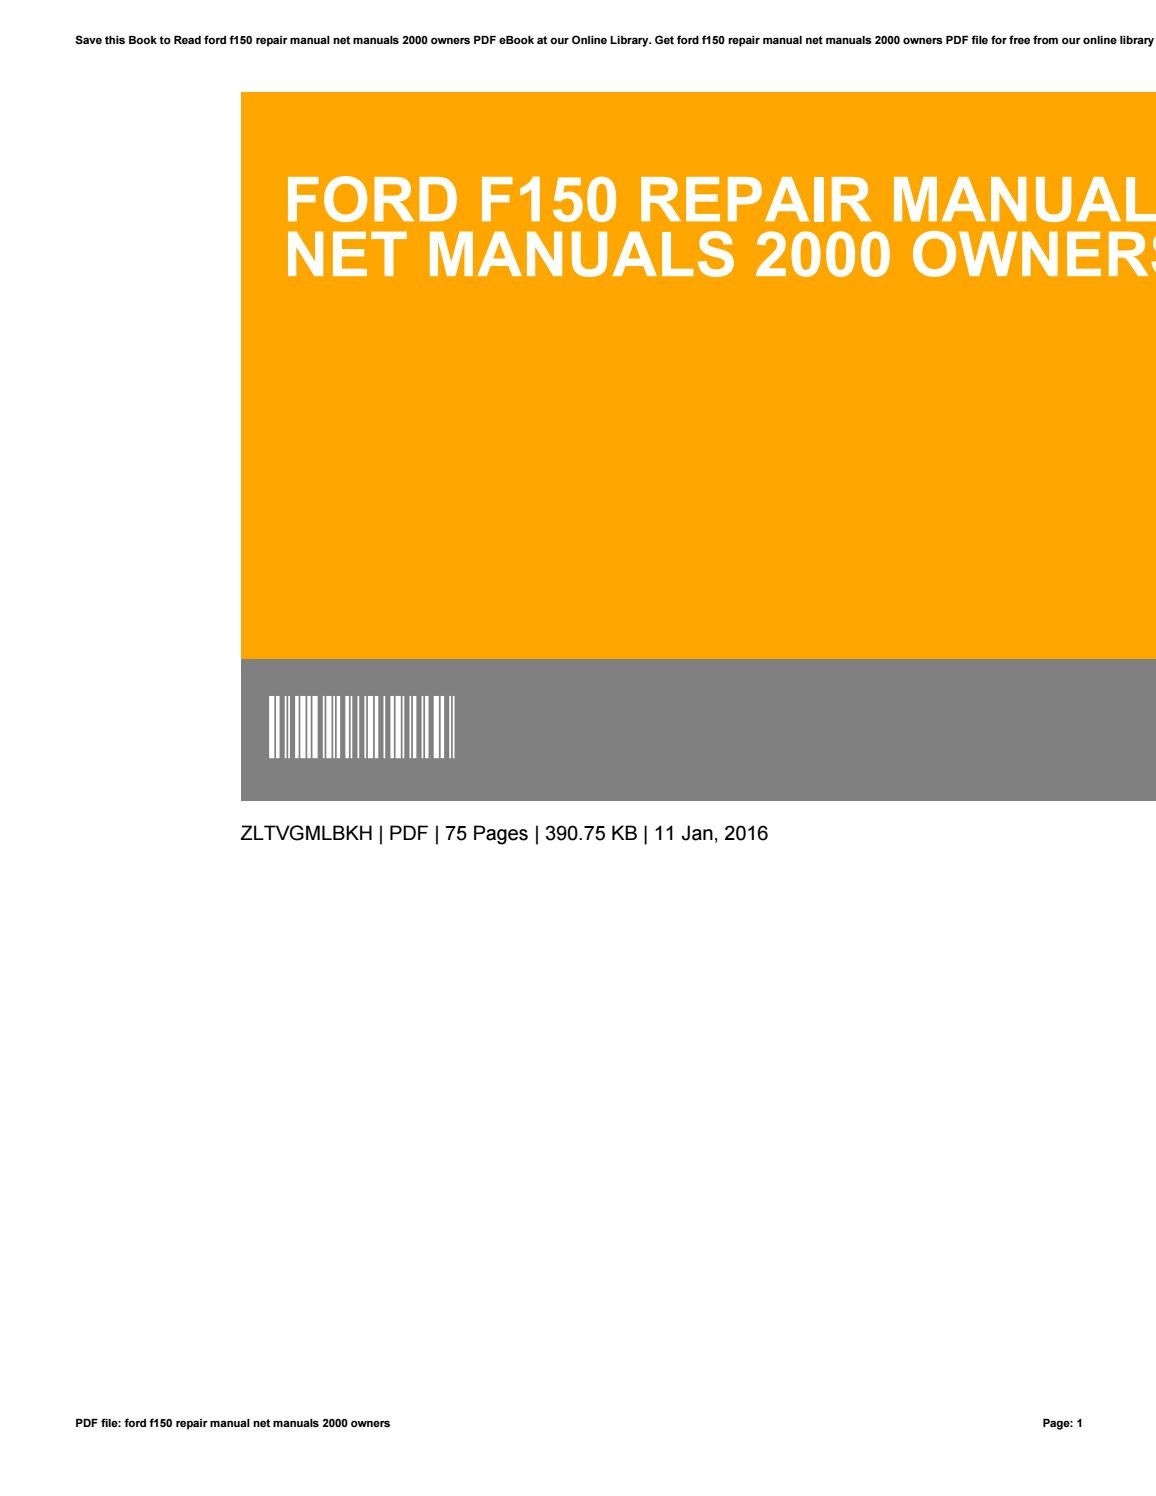 Ford f150 repair manual net manuals 2000 owners by ClarenceDunn3399 - issuu